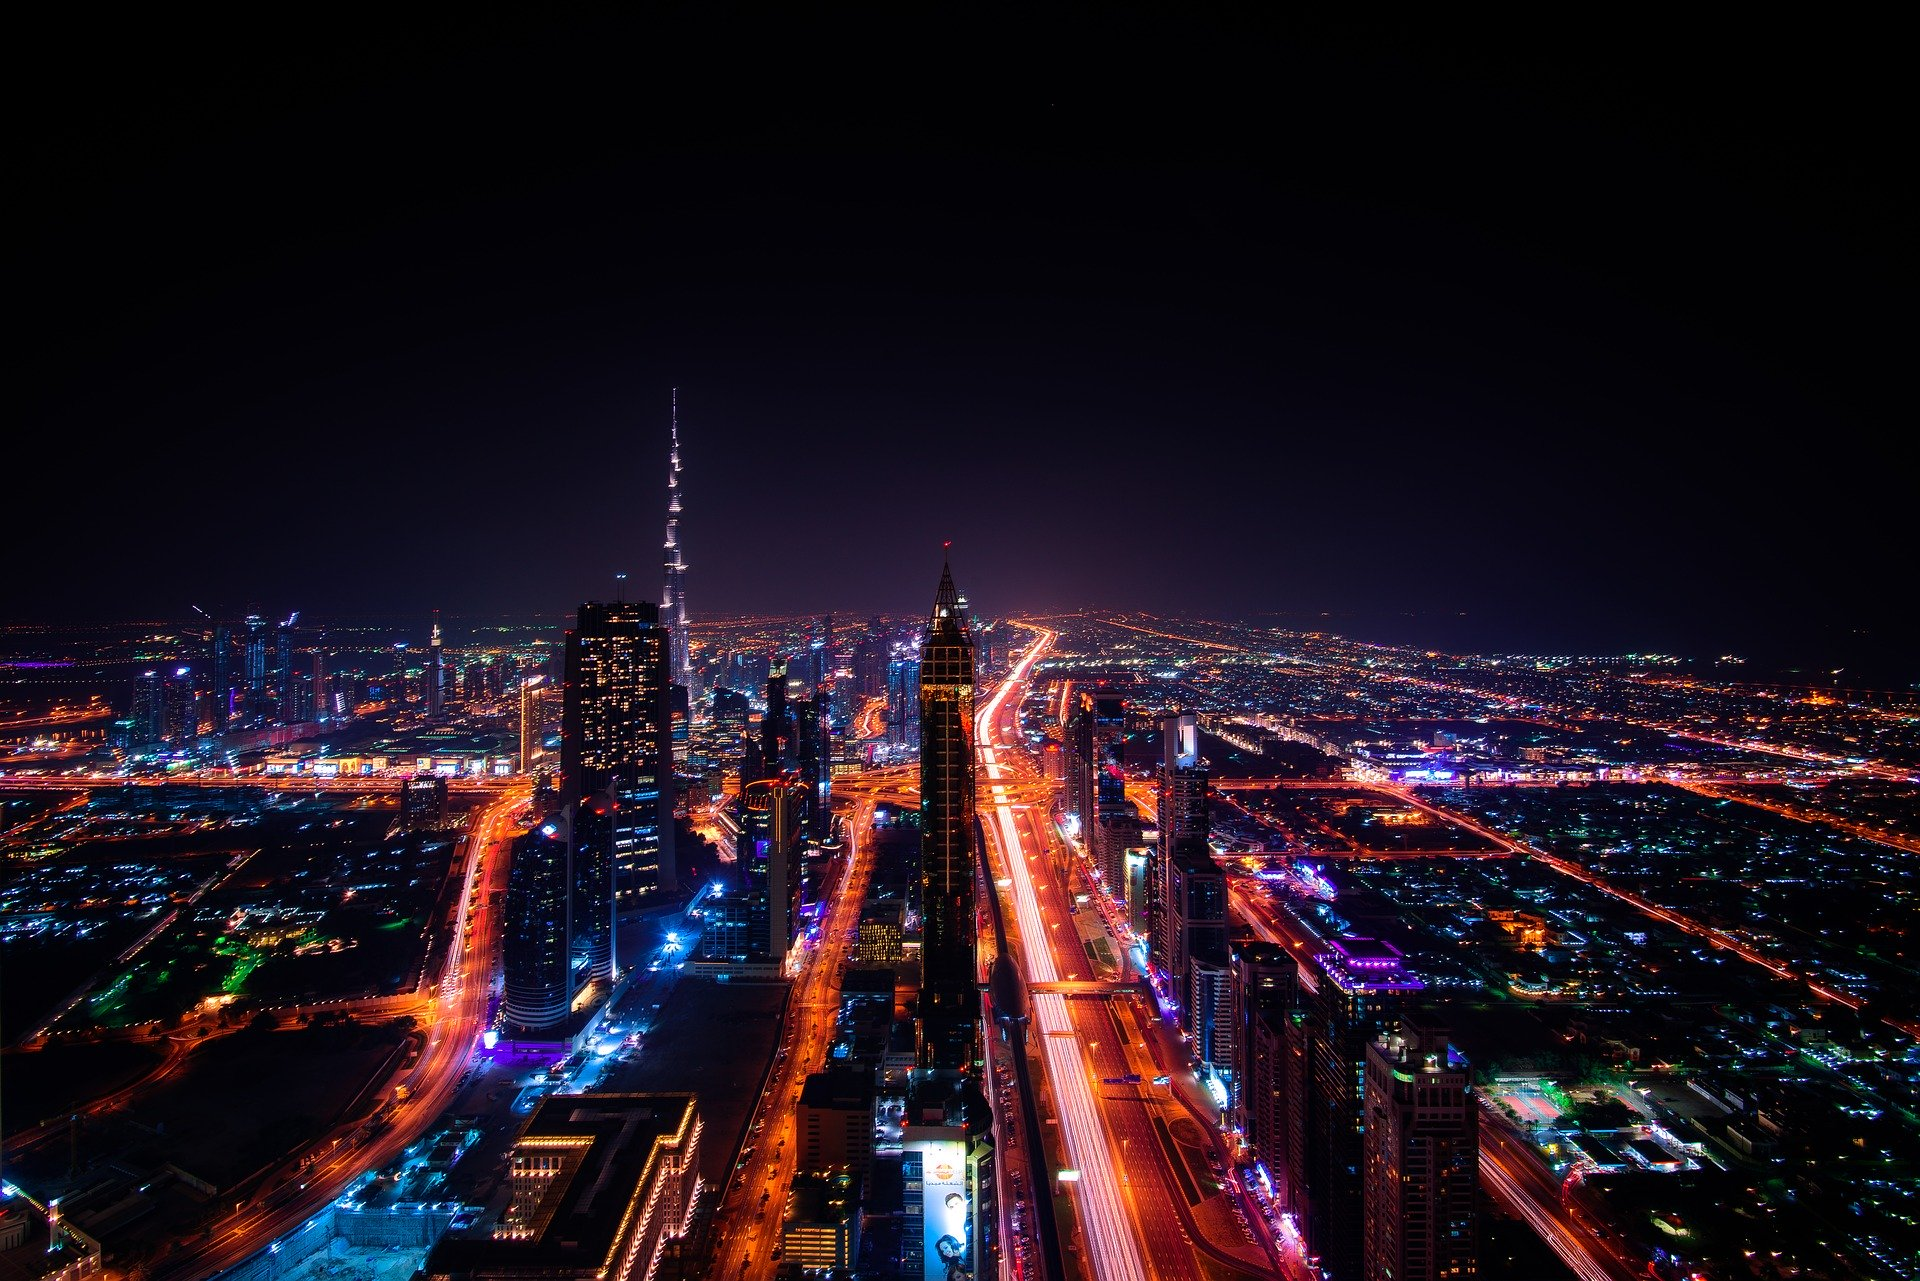 background scene - dubai-1767540_1920